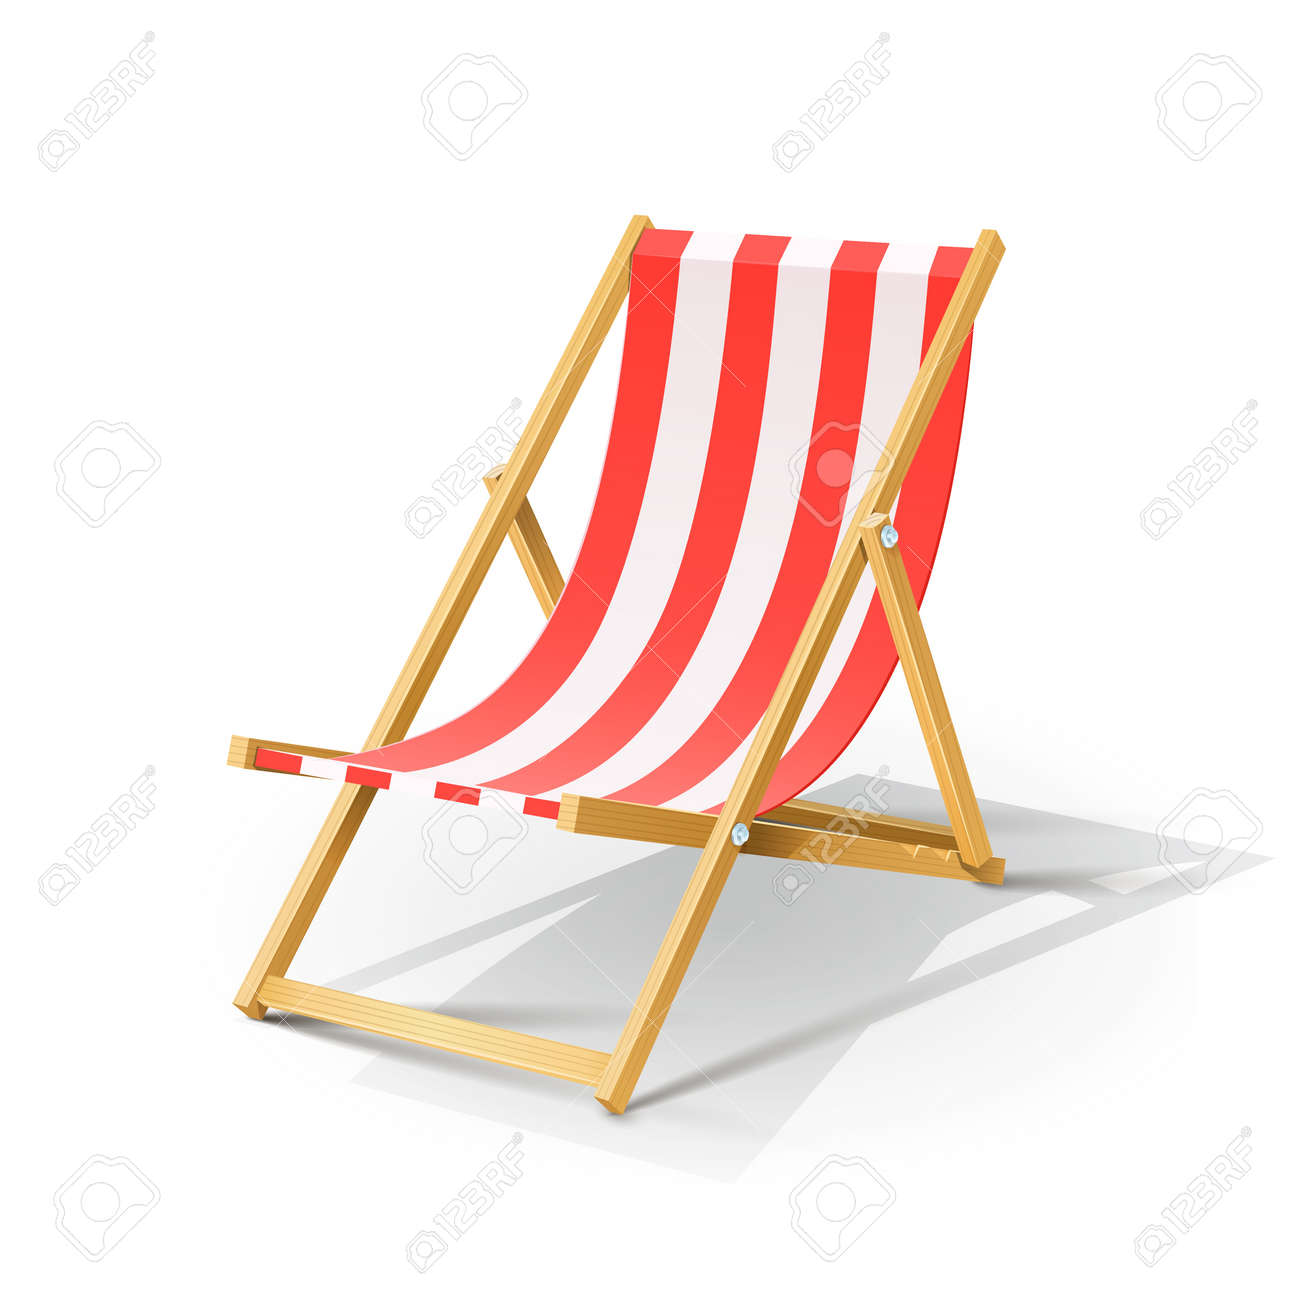 wooden beach chaise longue vector illustration isolated on white background EPS10. Transparent objects and opacity masks used for shadows and lights drawing Stock Vector - 20302646